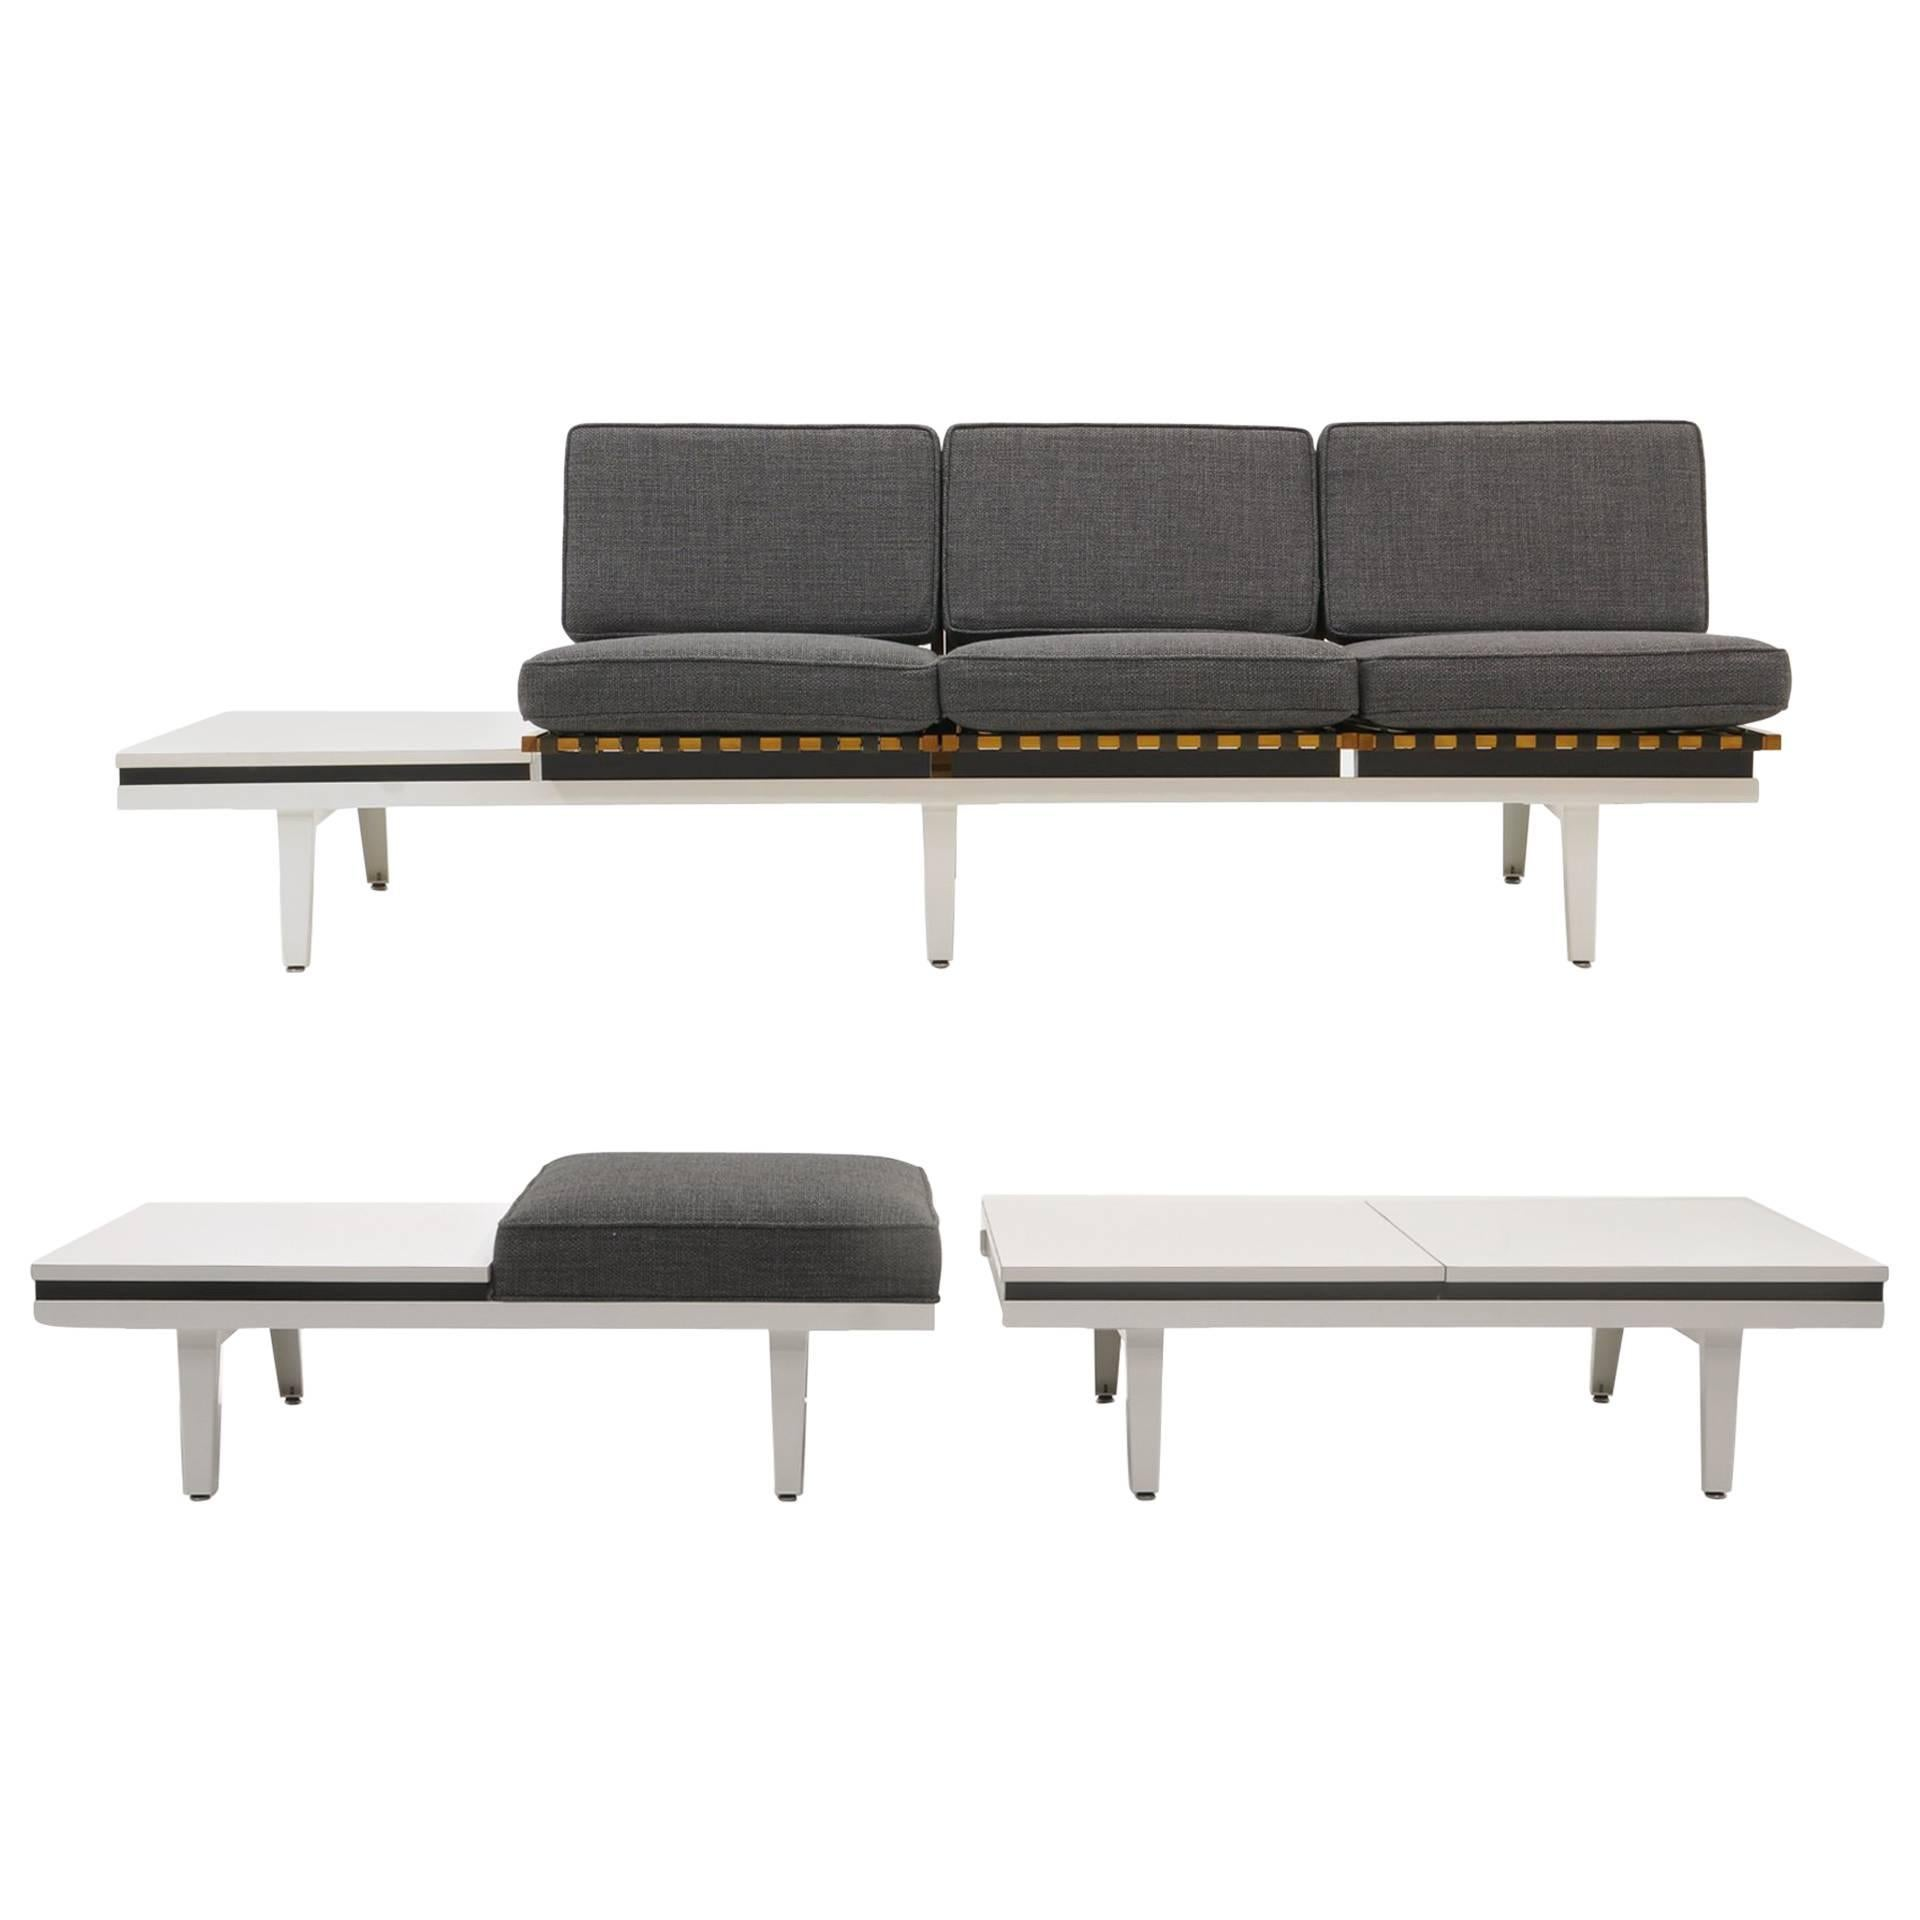 Steel Frame Sofa, Bench And Coffee Table By George Nelson For Herman Miller